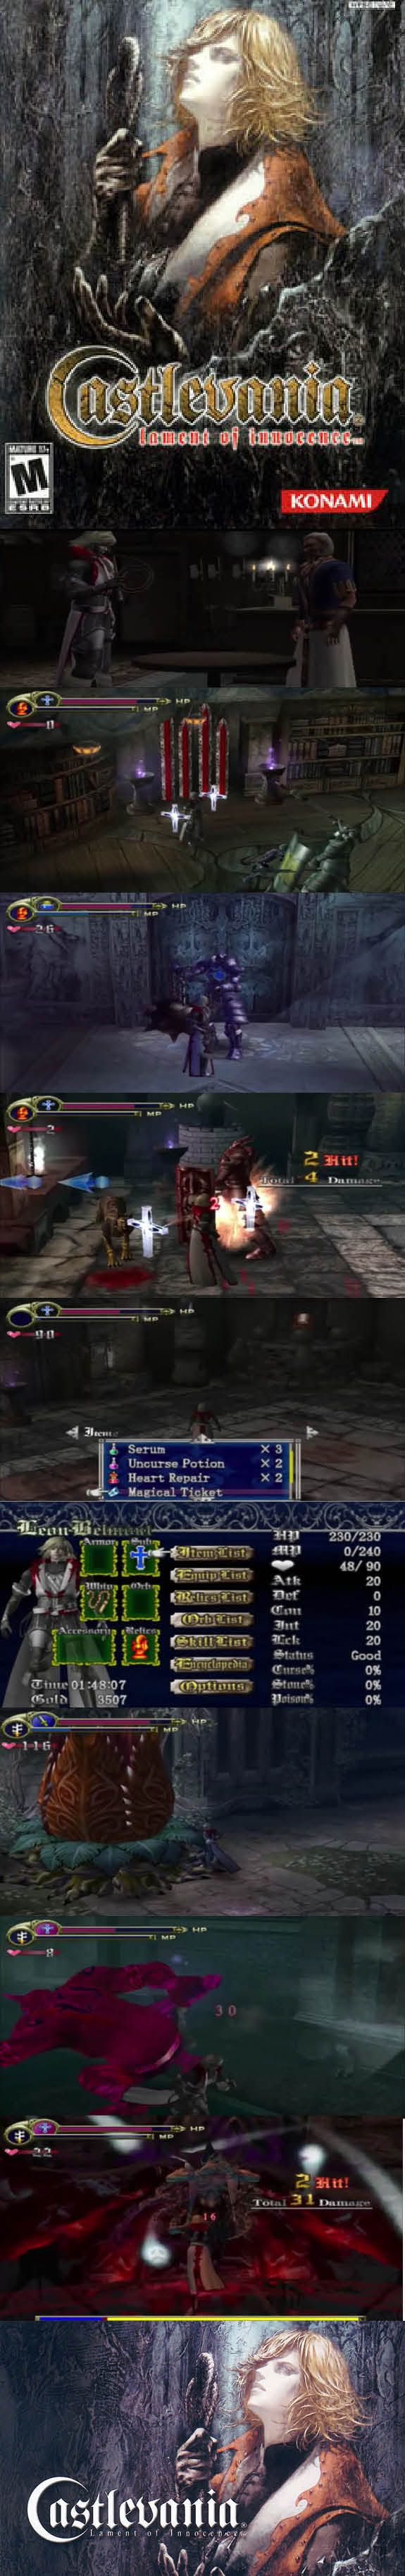 #RetroGamer Lament of Innocence is the first #Castlevania game for the #Xbox #PlayStation 2 generation! http://www.levelgamingground.com/castlevania-lament-of-innocence-review.html